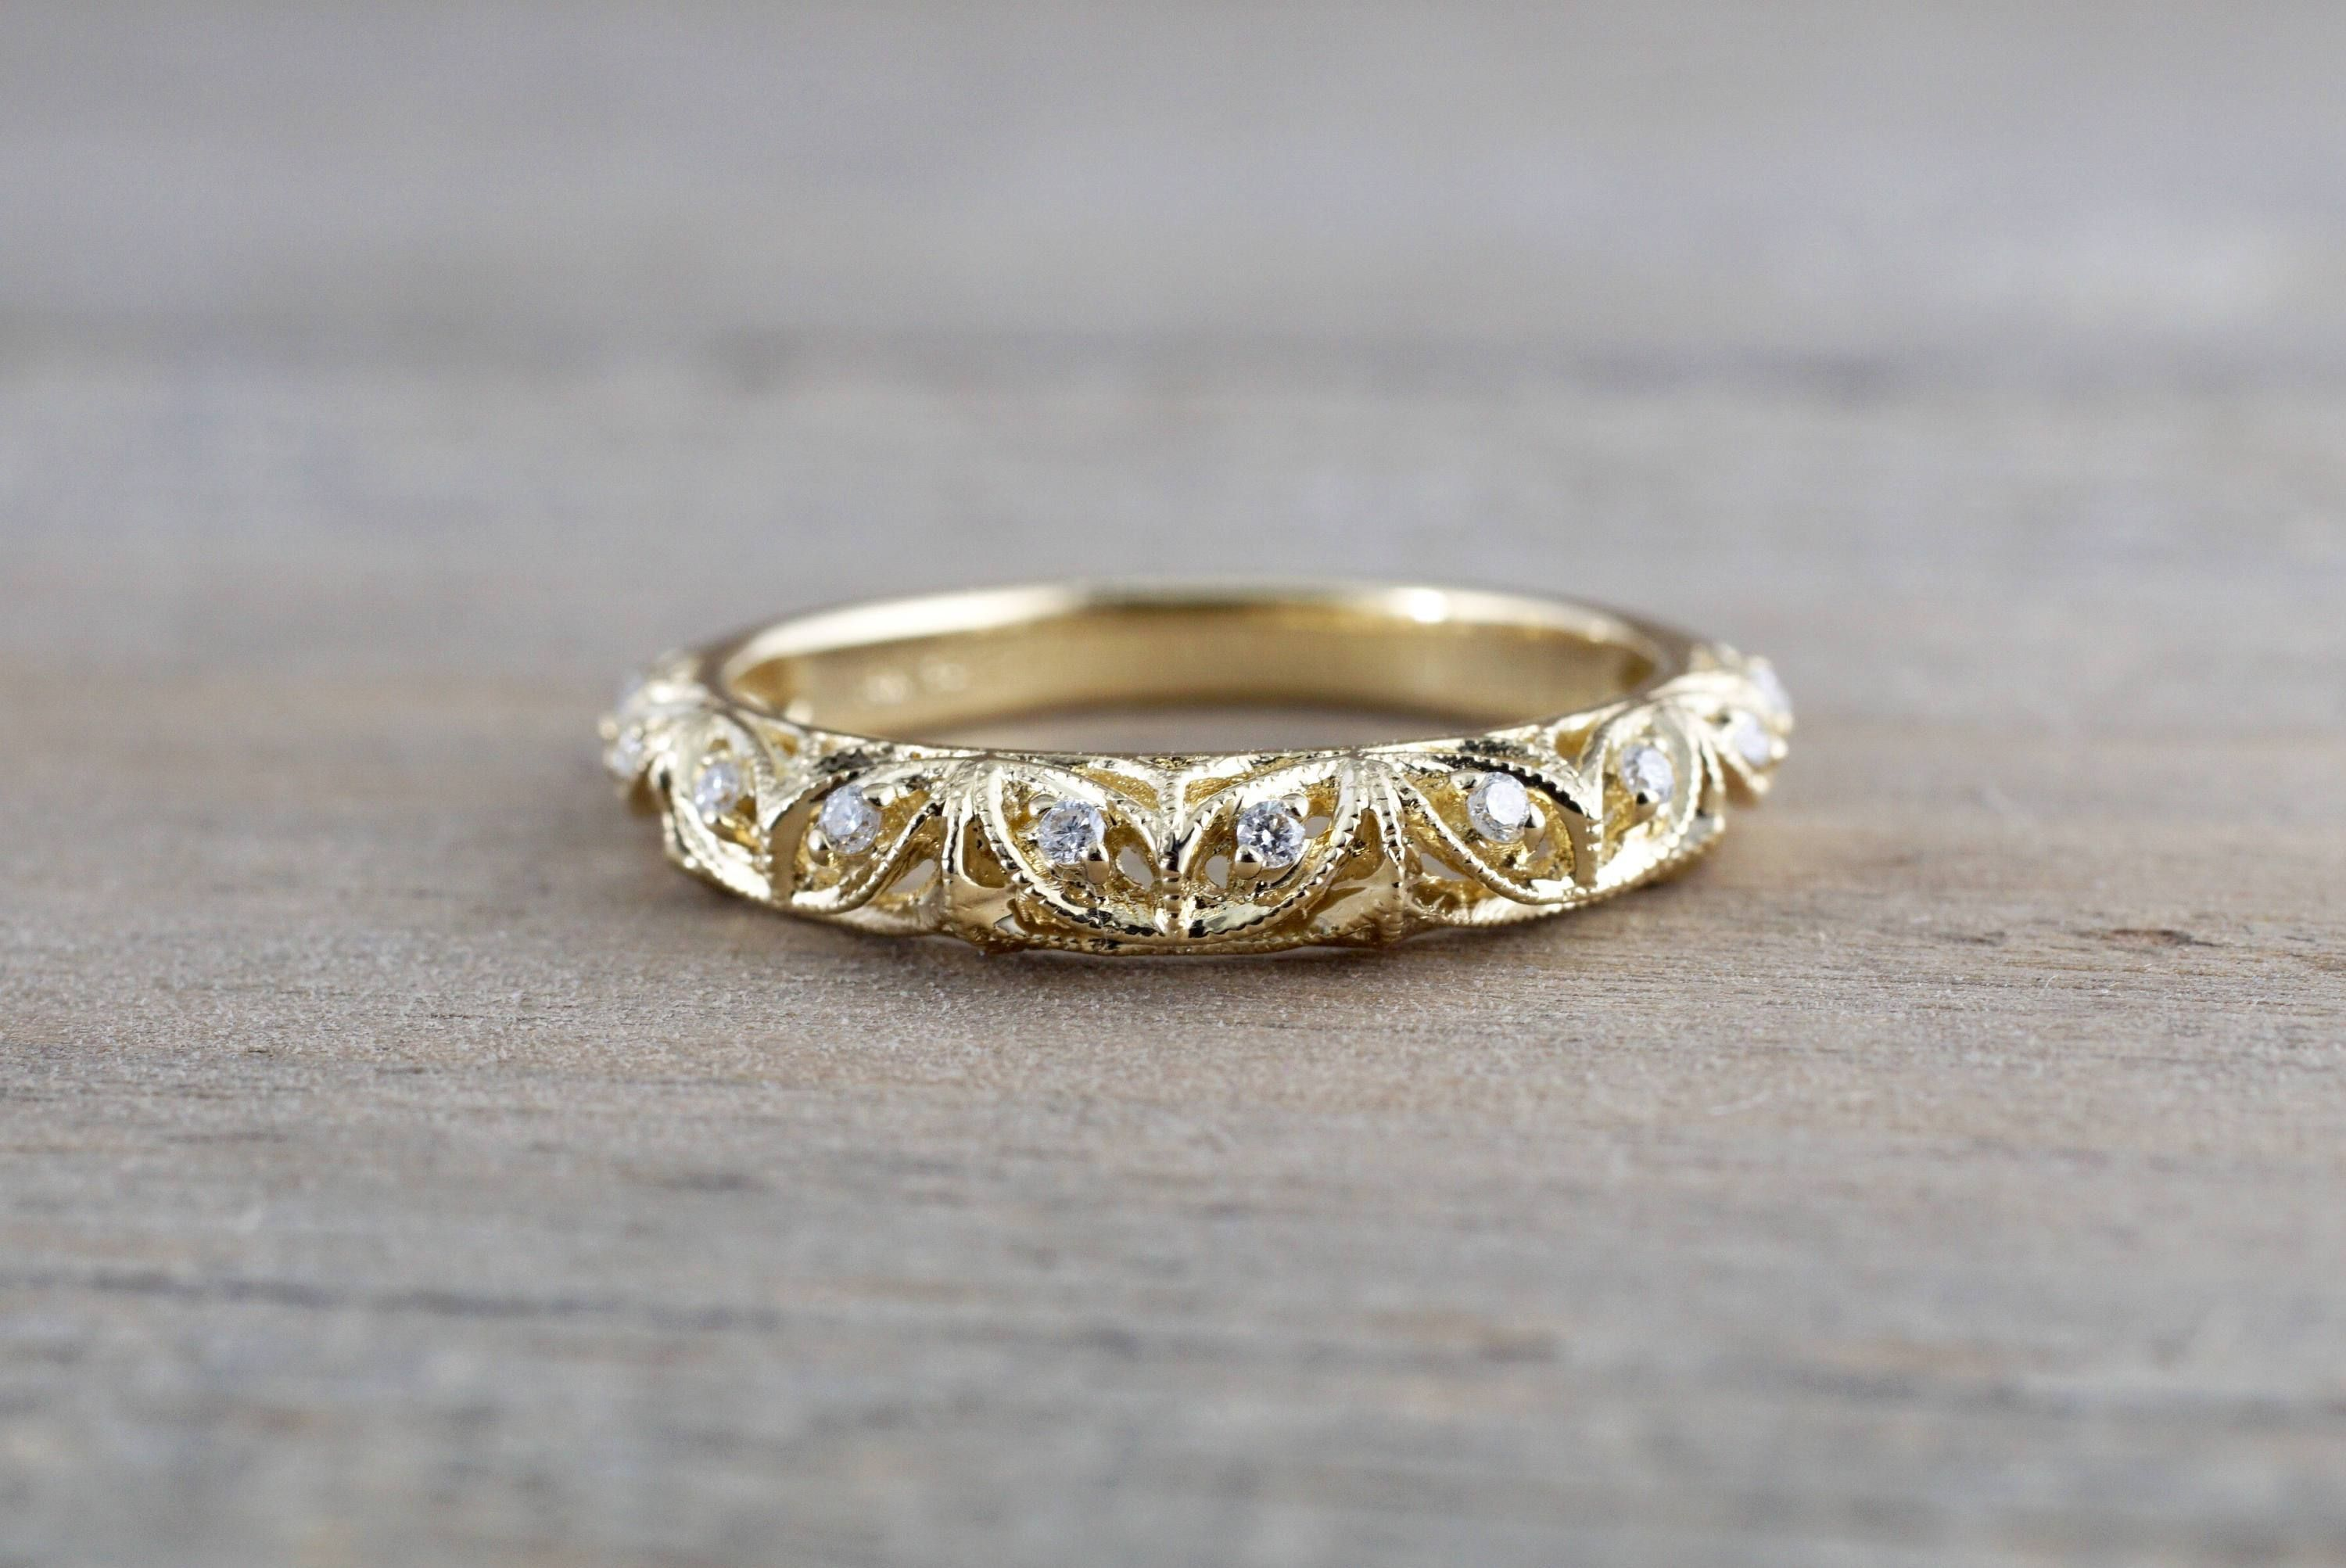 14kt Yellow Gold Diamond Milgrain Etching Vintage Wedding Engagement Anniversary Band Ring Filigree Vine Gold Diamond Gold Diamond